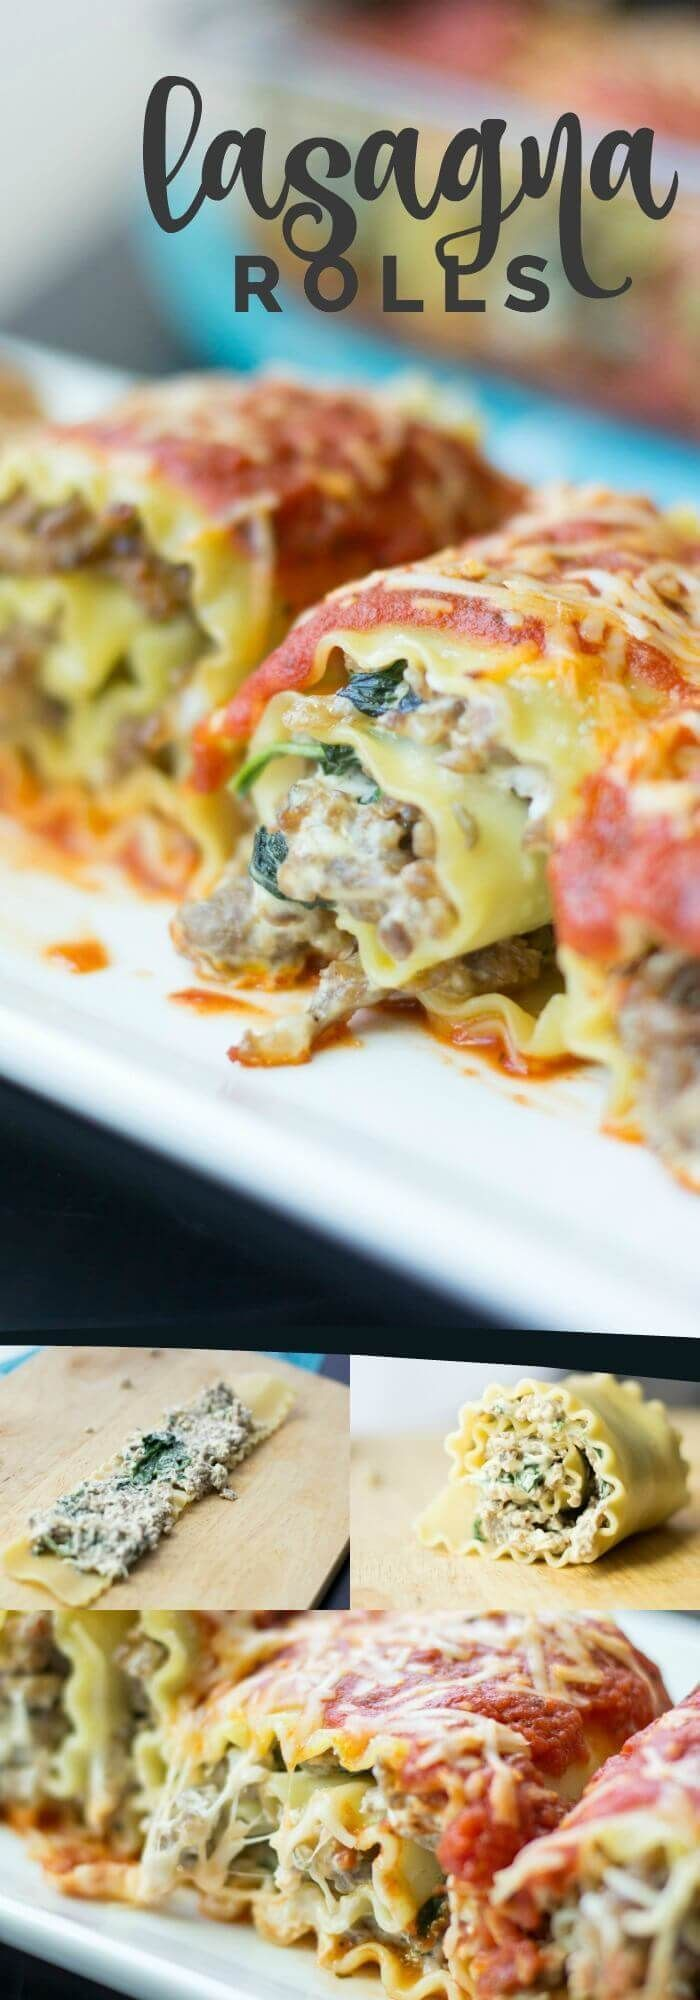 Sausage, Spinach & Cream Cheese Lasagna Rolls Recipe!